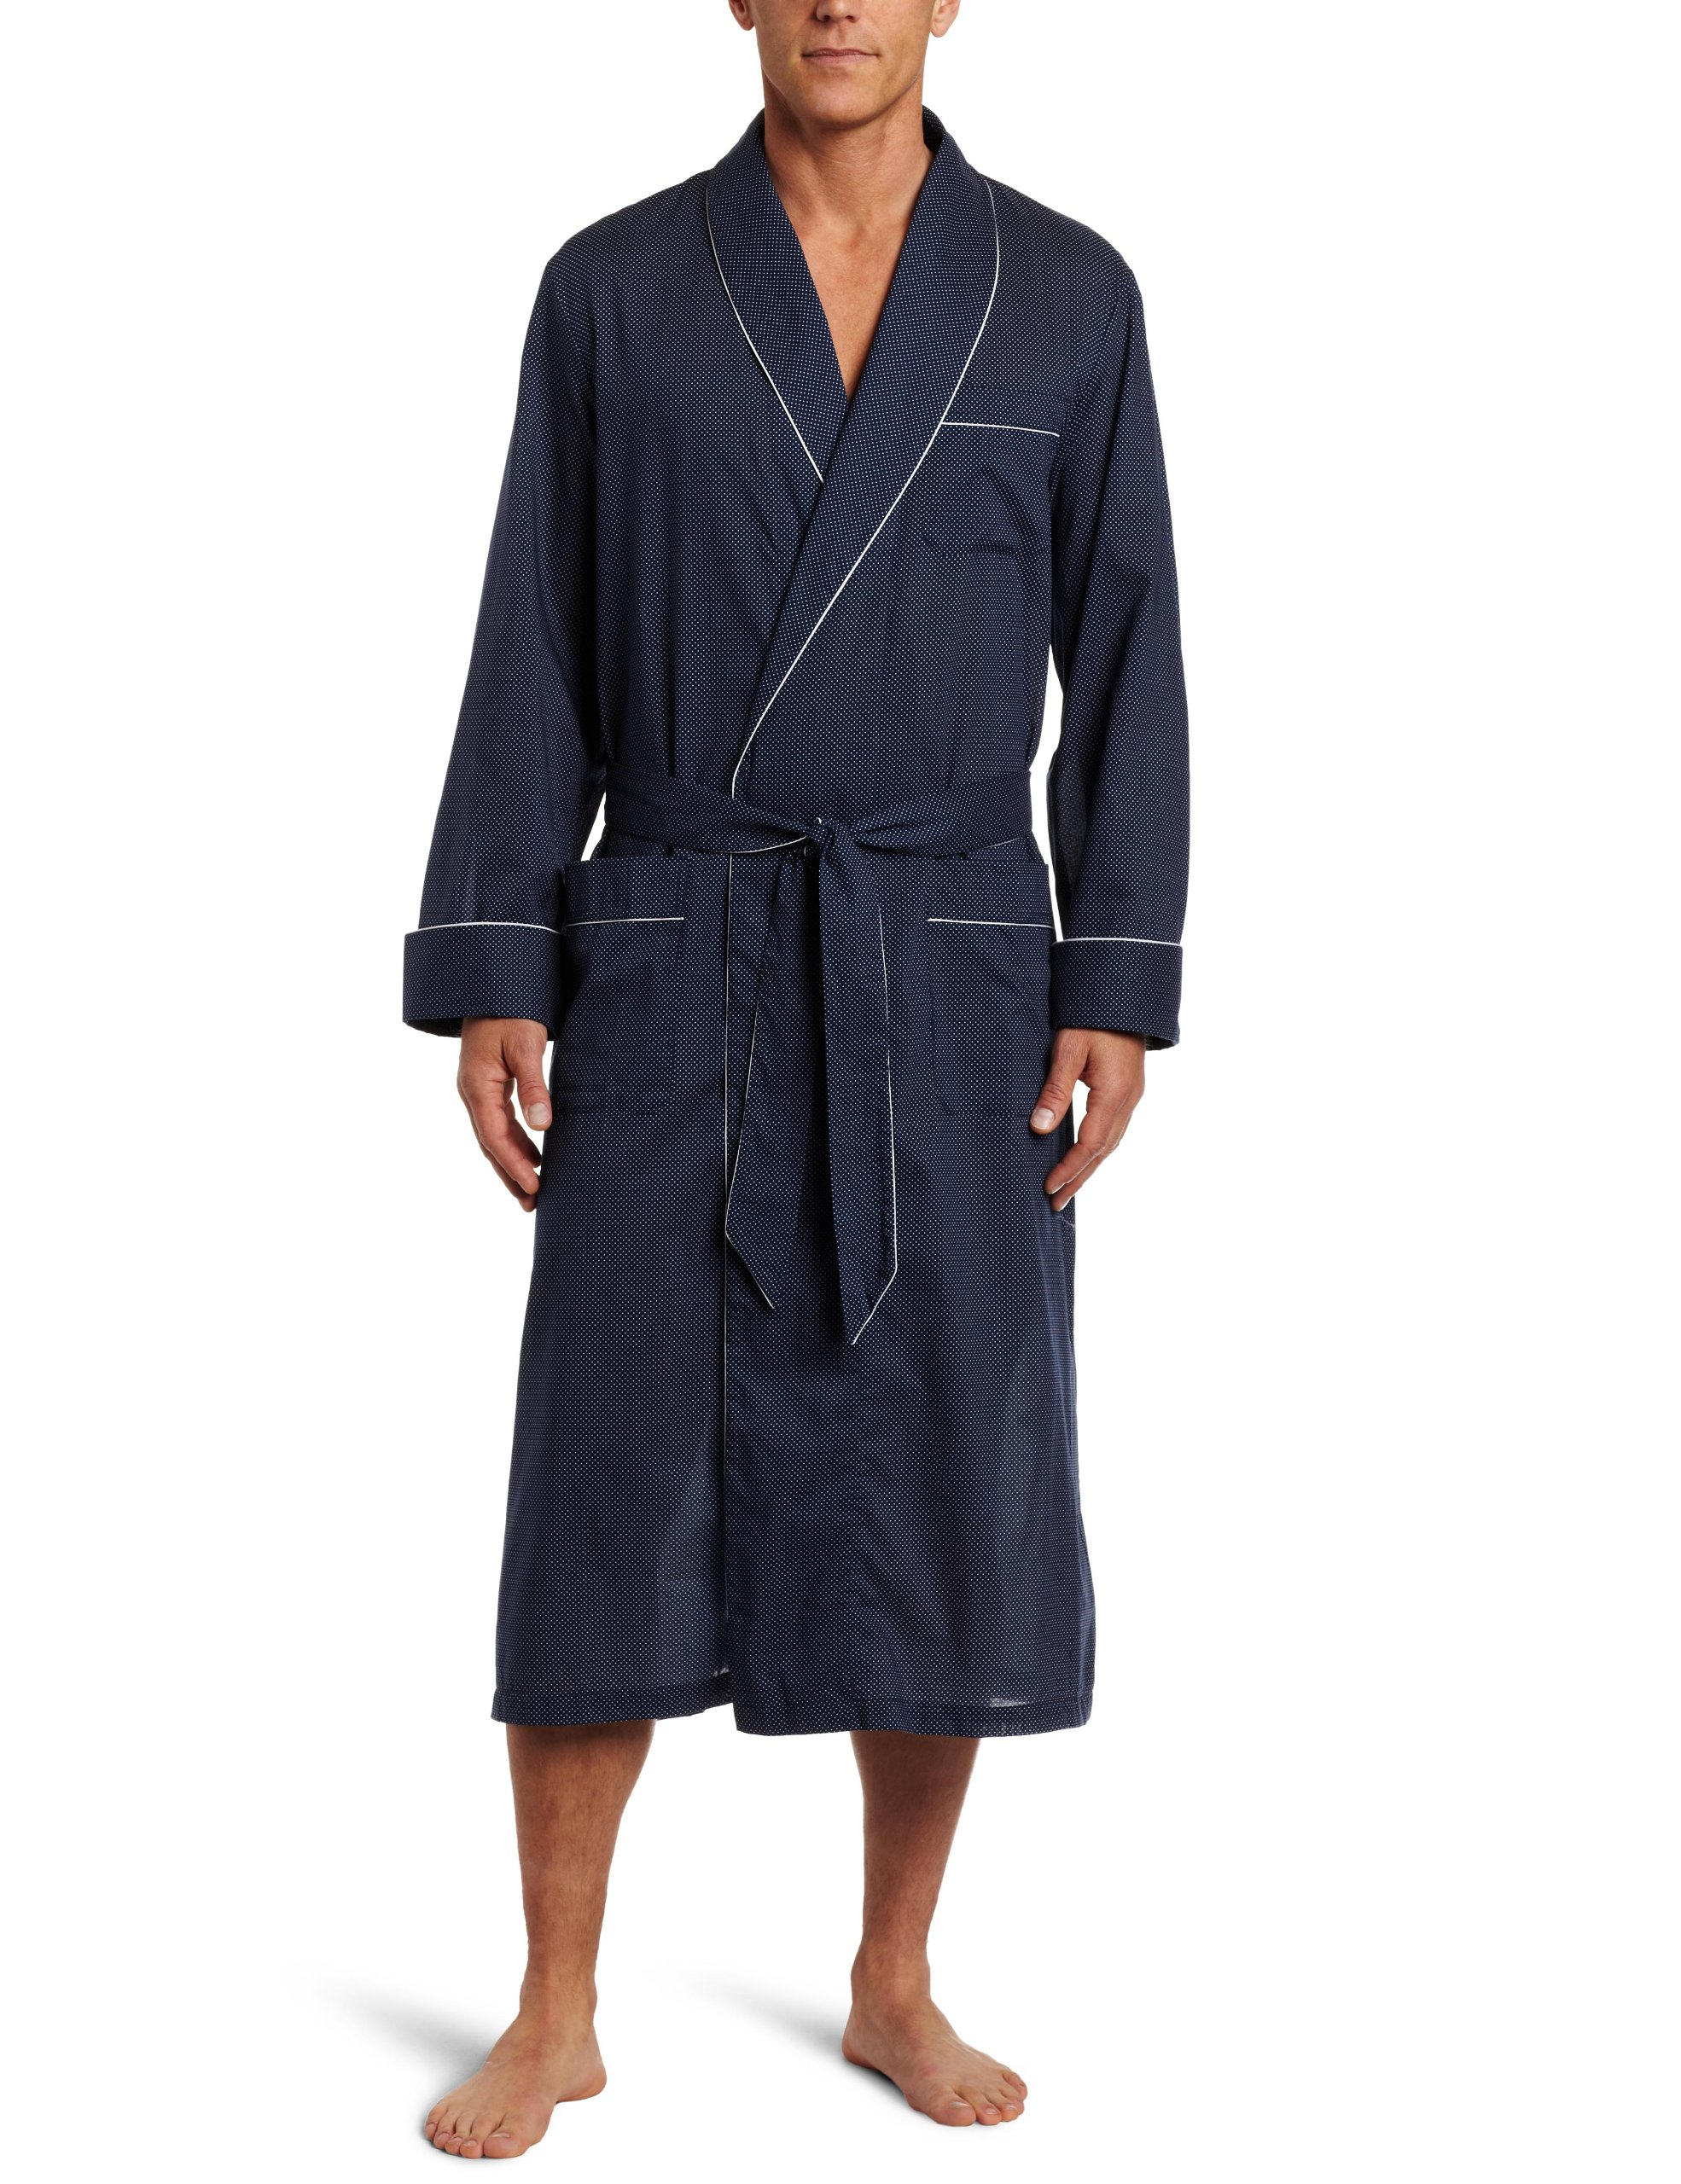 Derek Rose Men's Plaza Robe, Navy, XX-Large